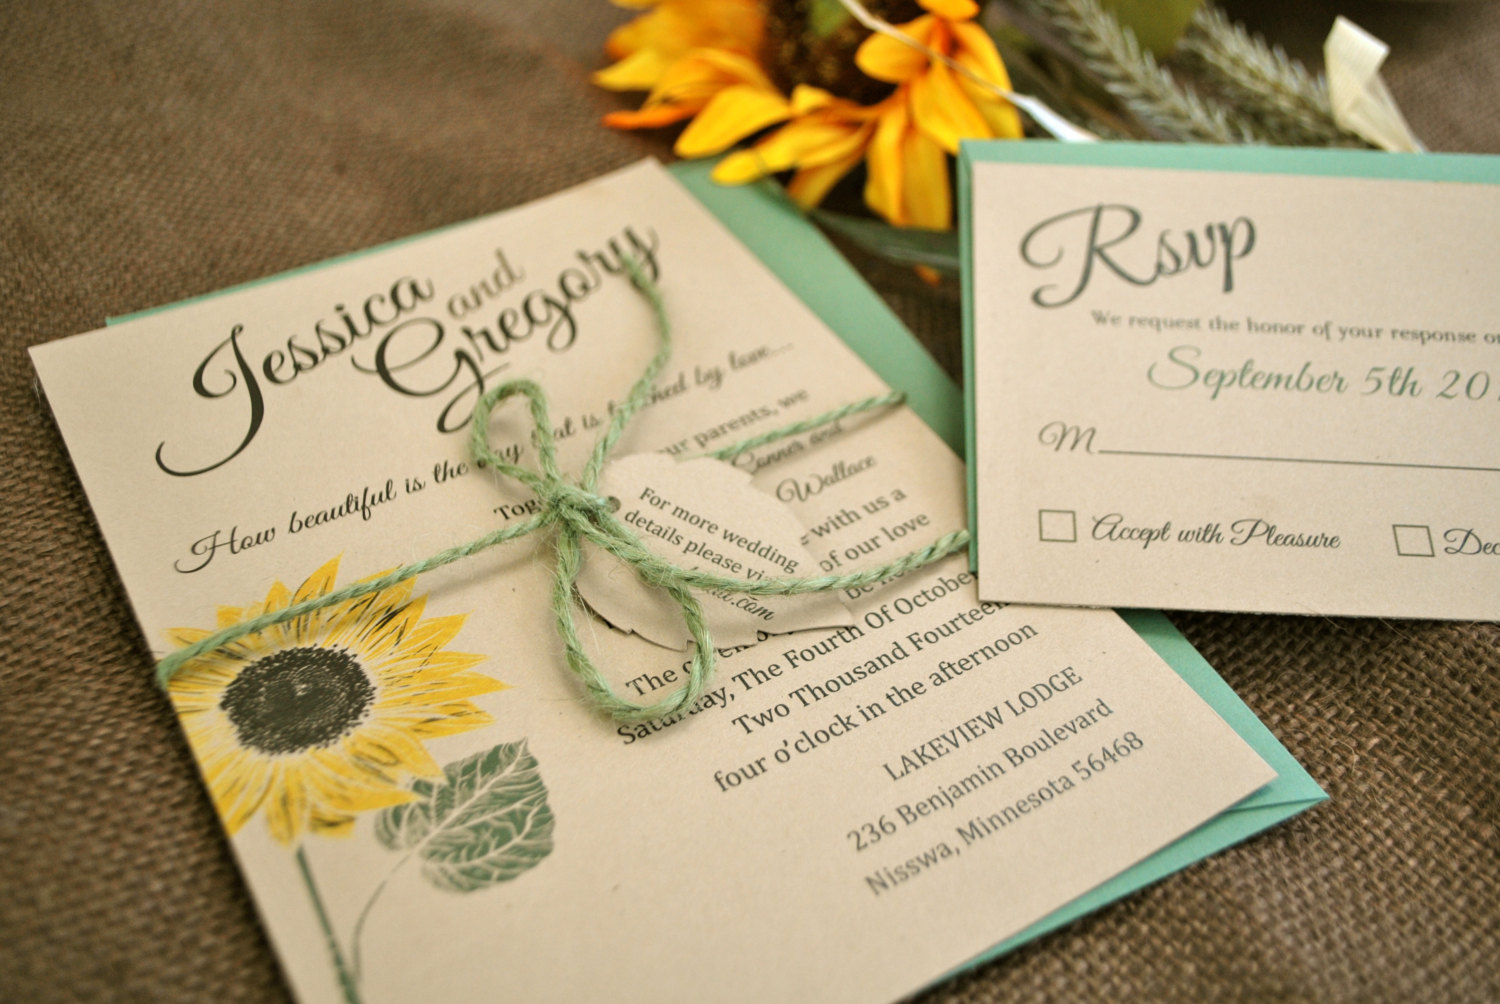 Masterly Yellow Sunflower Wedding Invitation Deer Pearl Flowers Sunflower Wedding Invitations Sets Sunflower Wedding Shower Invitations Kraft Mint Yellow Sunflower Wedding Invitation Kraft Mint wedding Sunflower Wedding Invitations